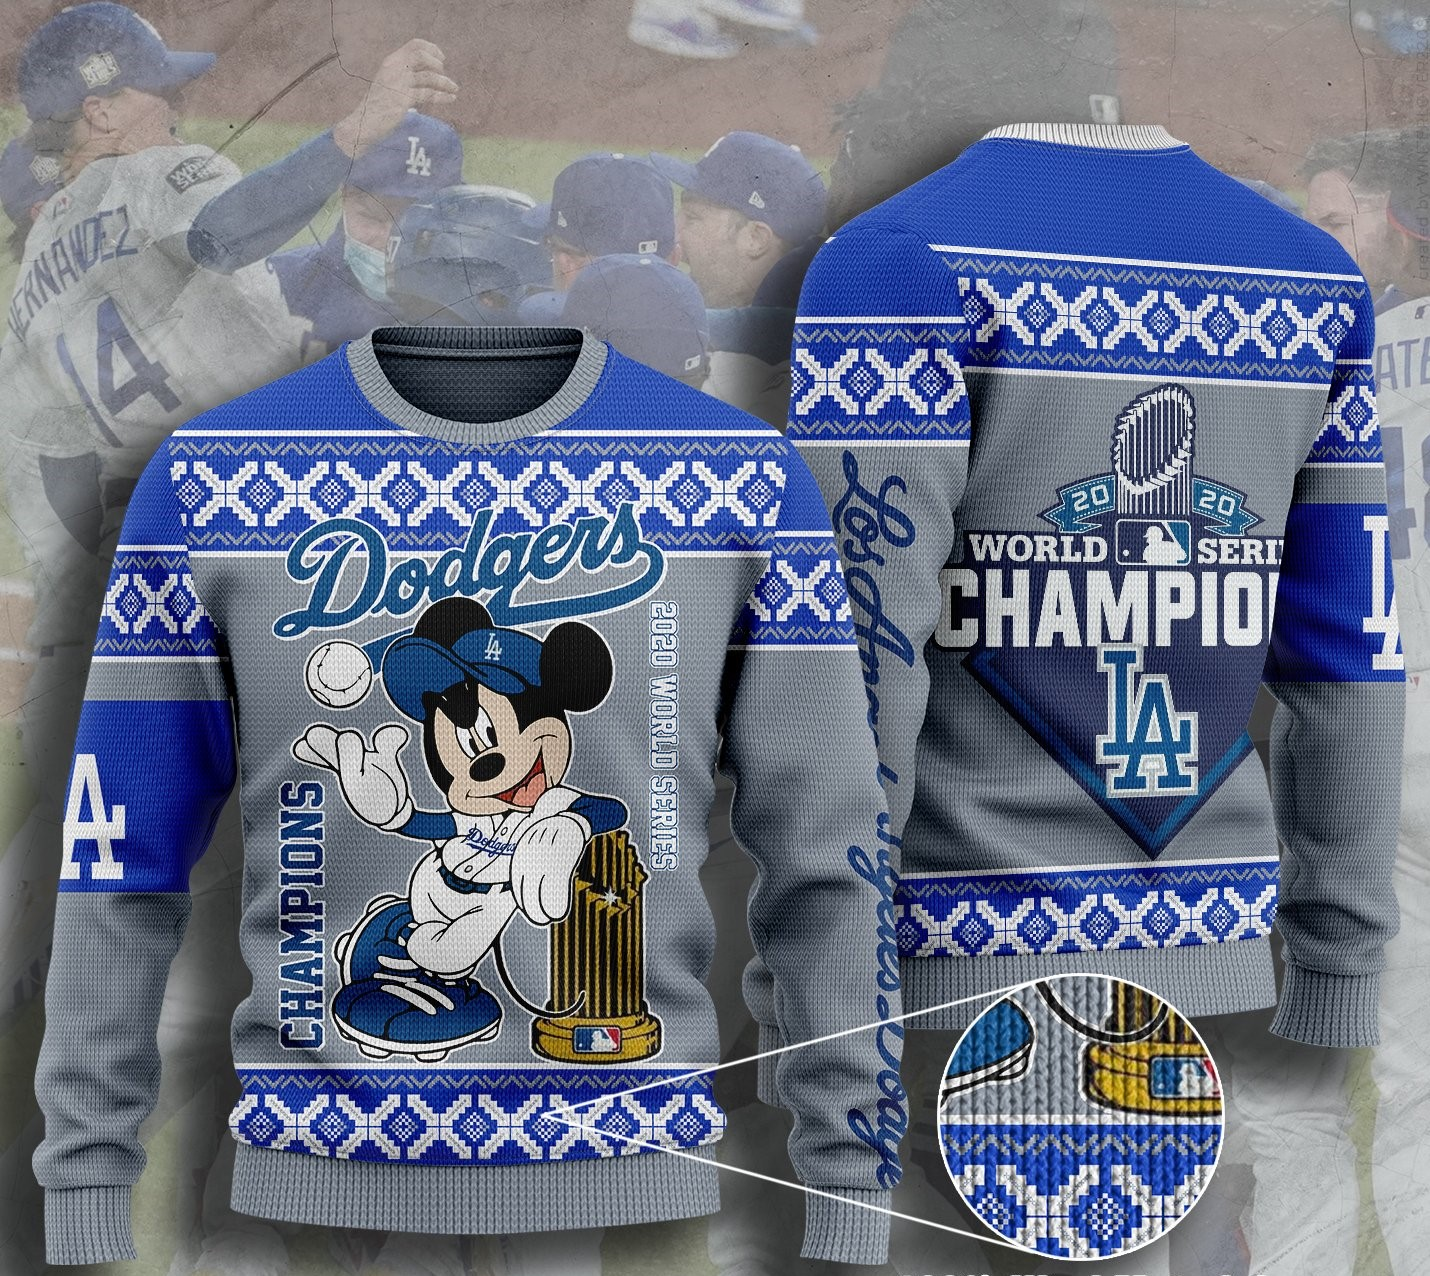 los angeles dodgers champions mickey mouse ugly christmas sweater